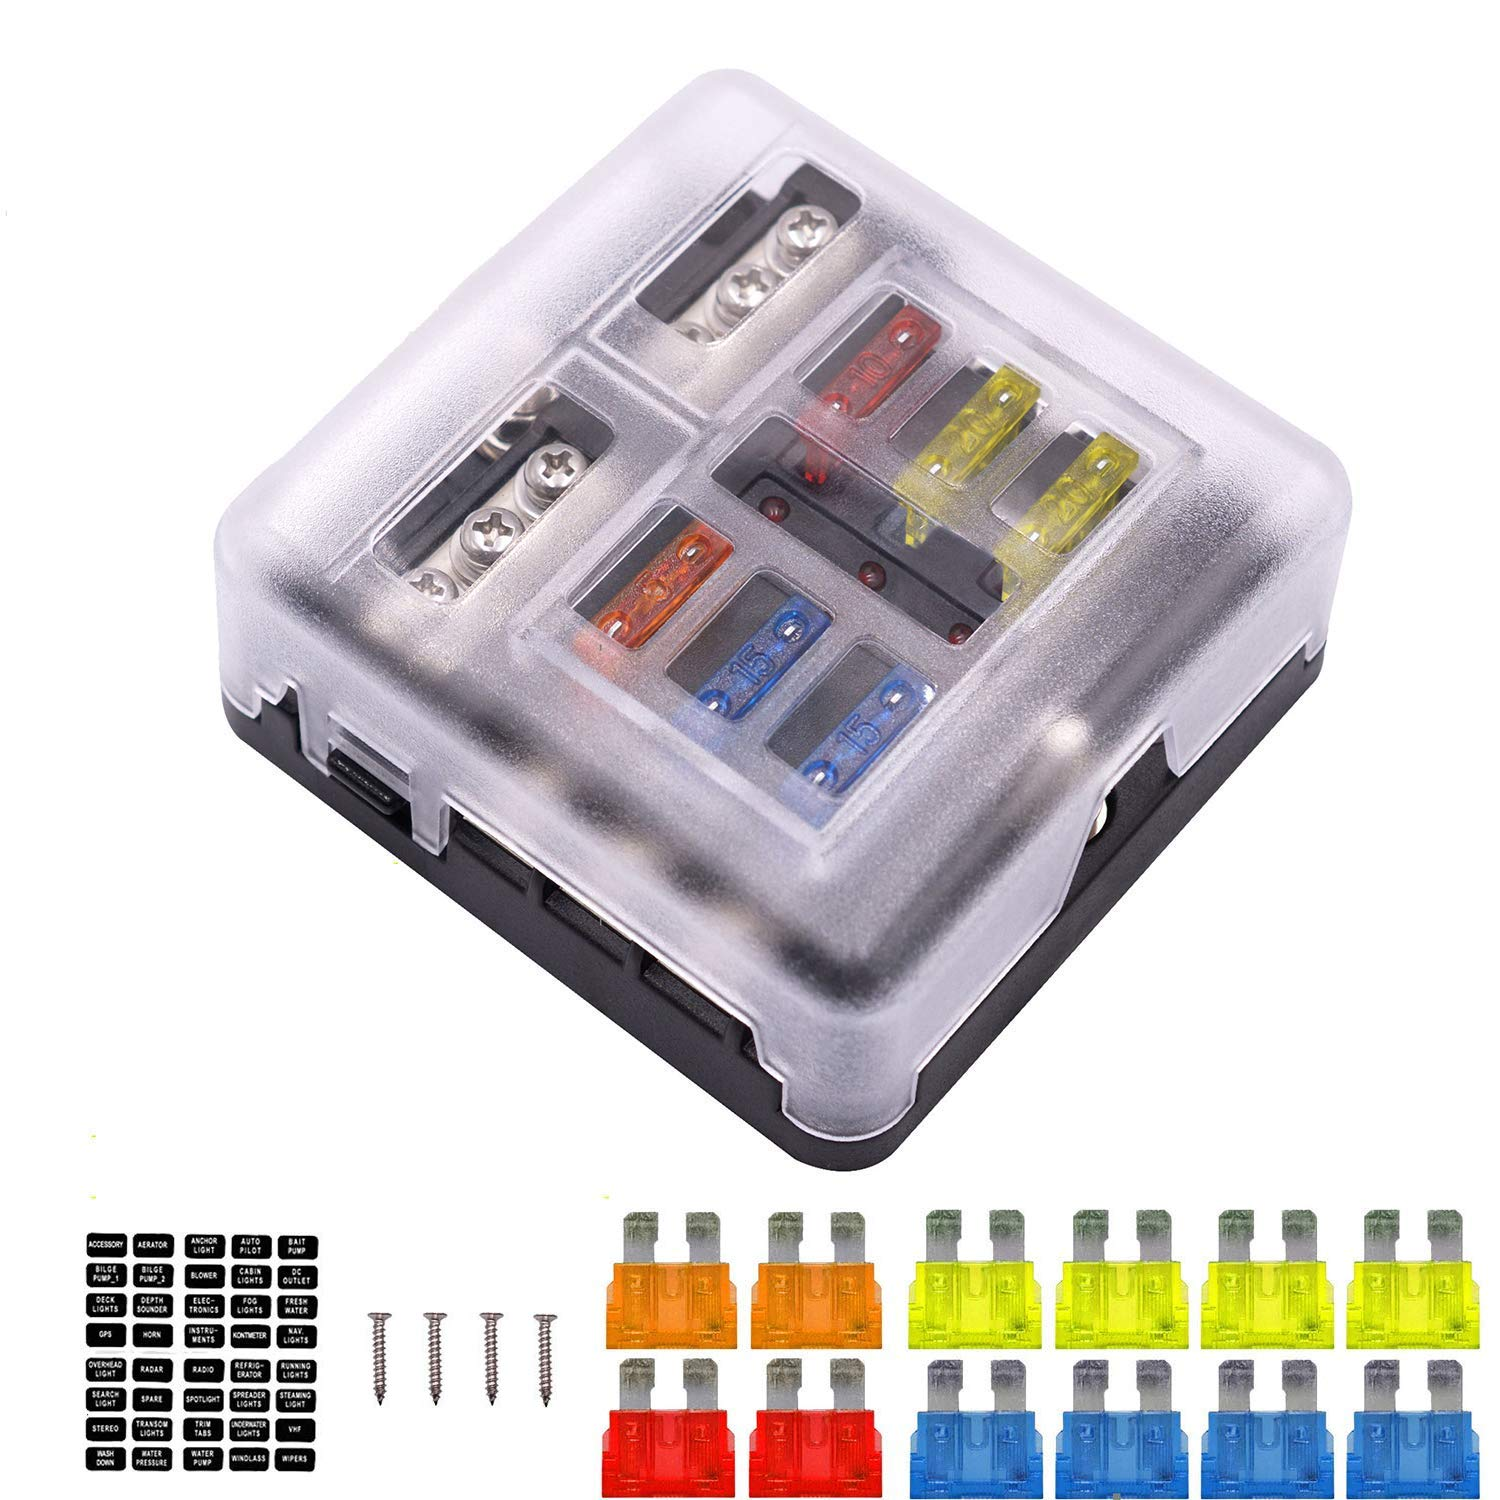 6-Way Fuse Box Blade Fuse Block Holder Screw Nut Terminal W/Negative Bus 5A 10A 15A 20A Free Fuses LED Indicator Waterpoof Cover for Automotive Car Marine Boat